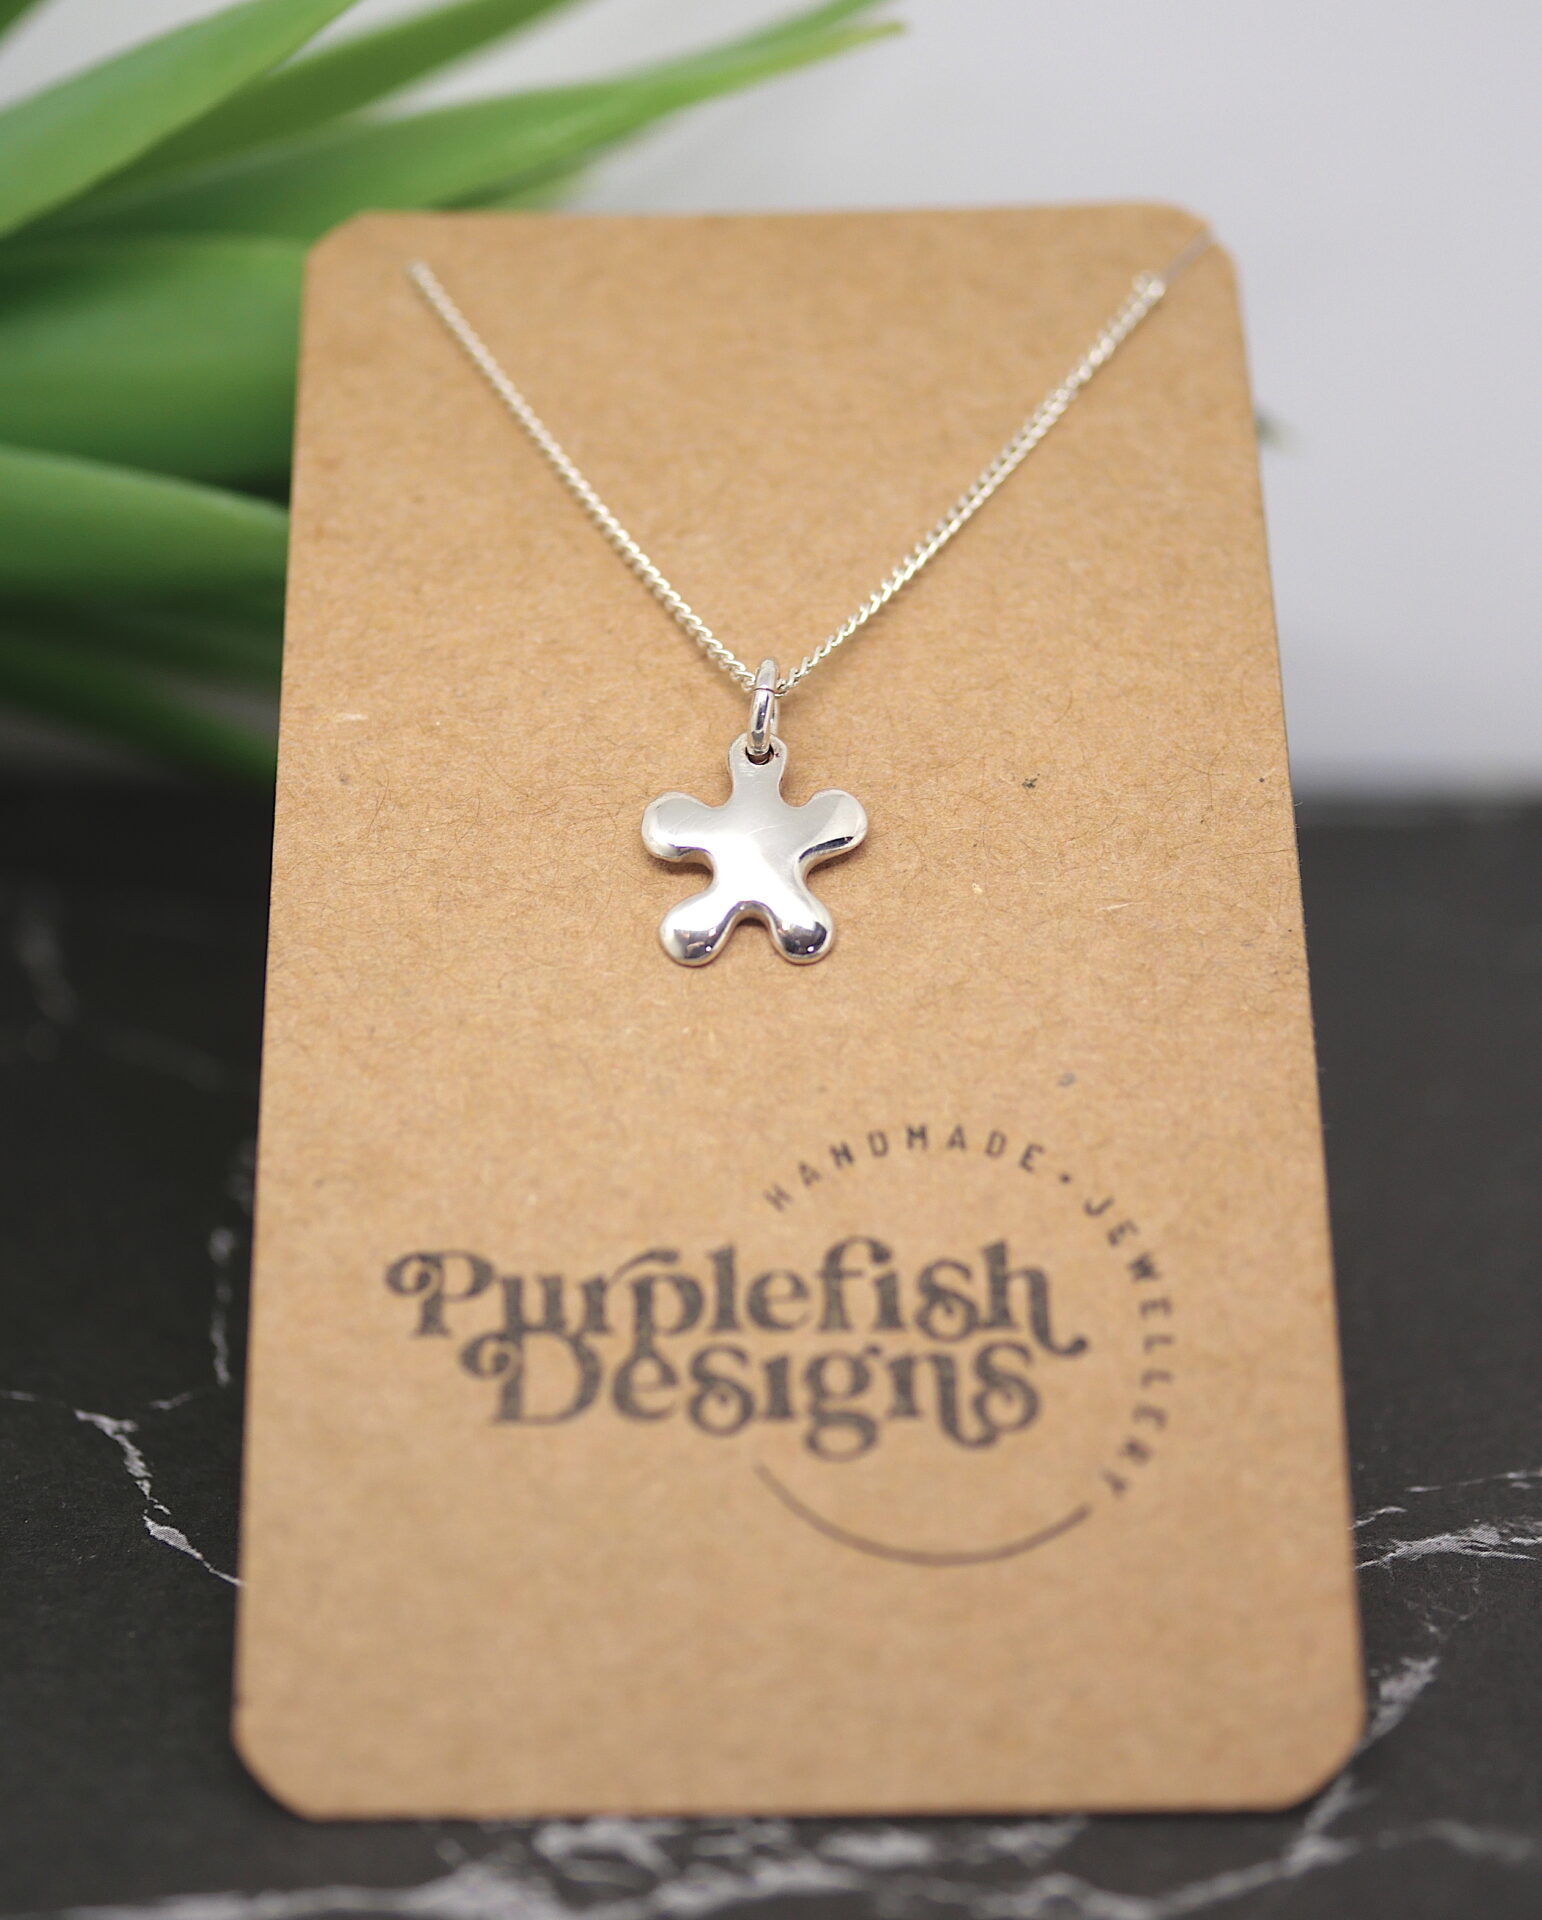 Tiny Splat – Handmade Solid Sterling Silver Pendant With Fine Chain By Purplefish Designs